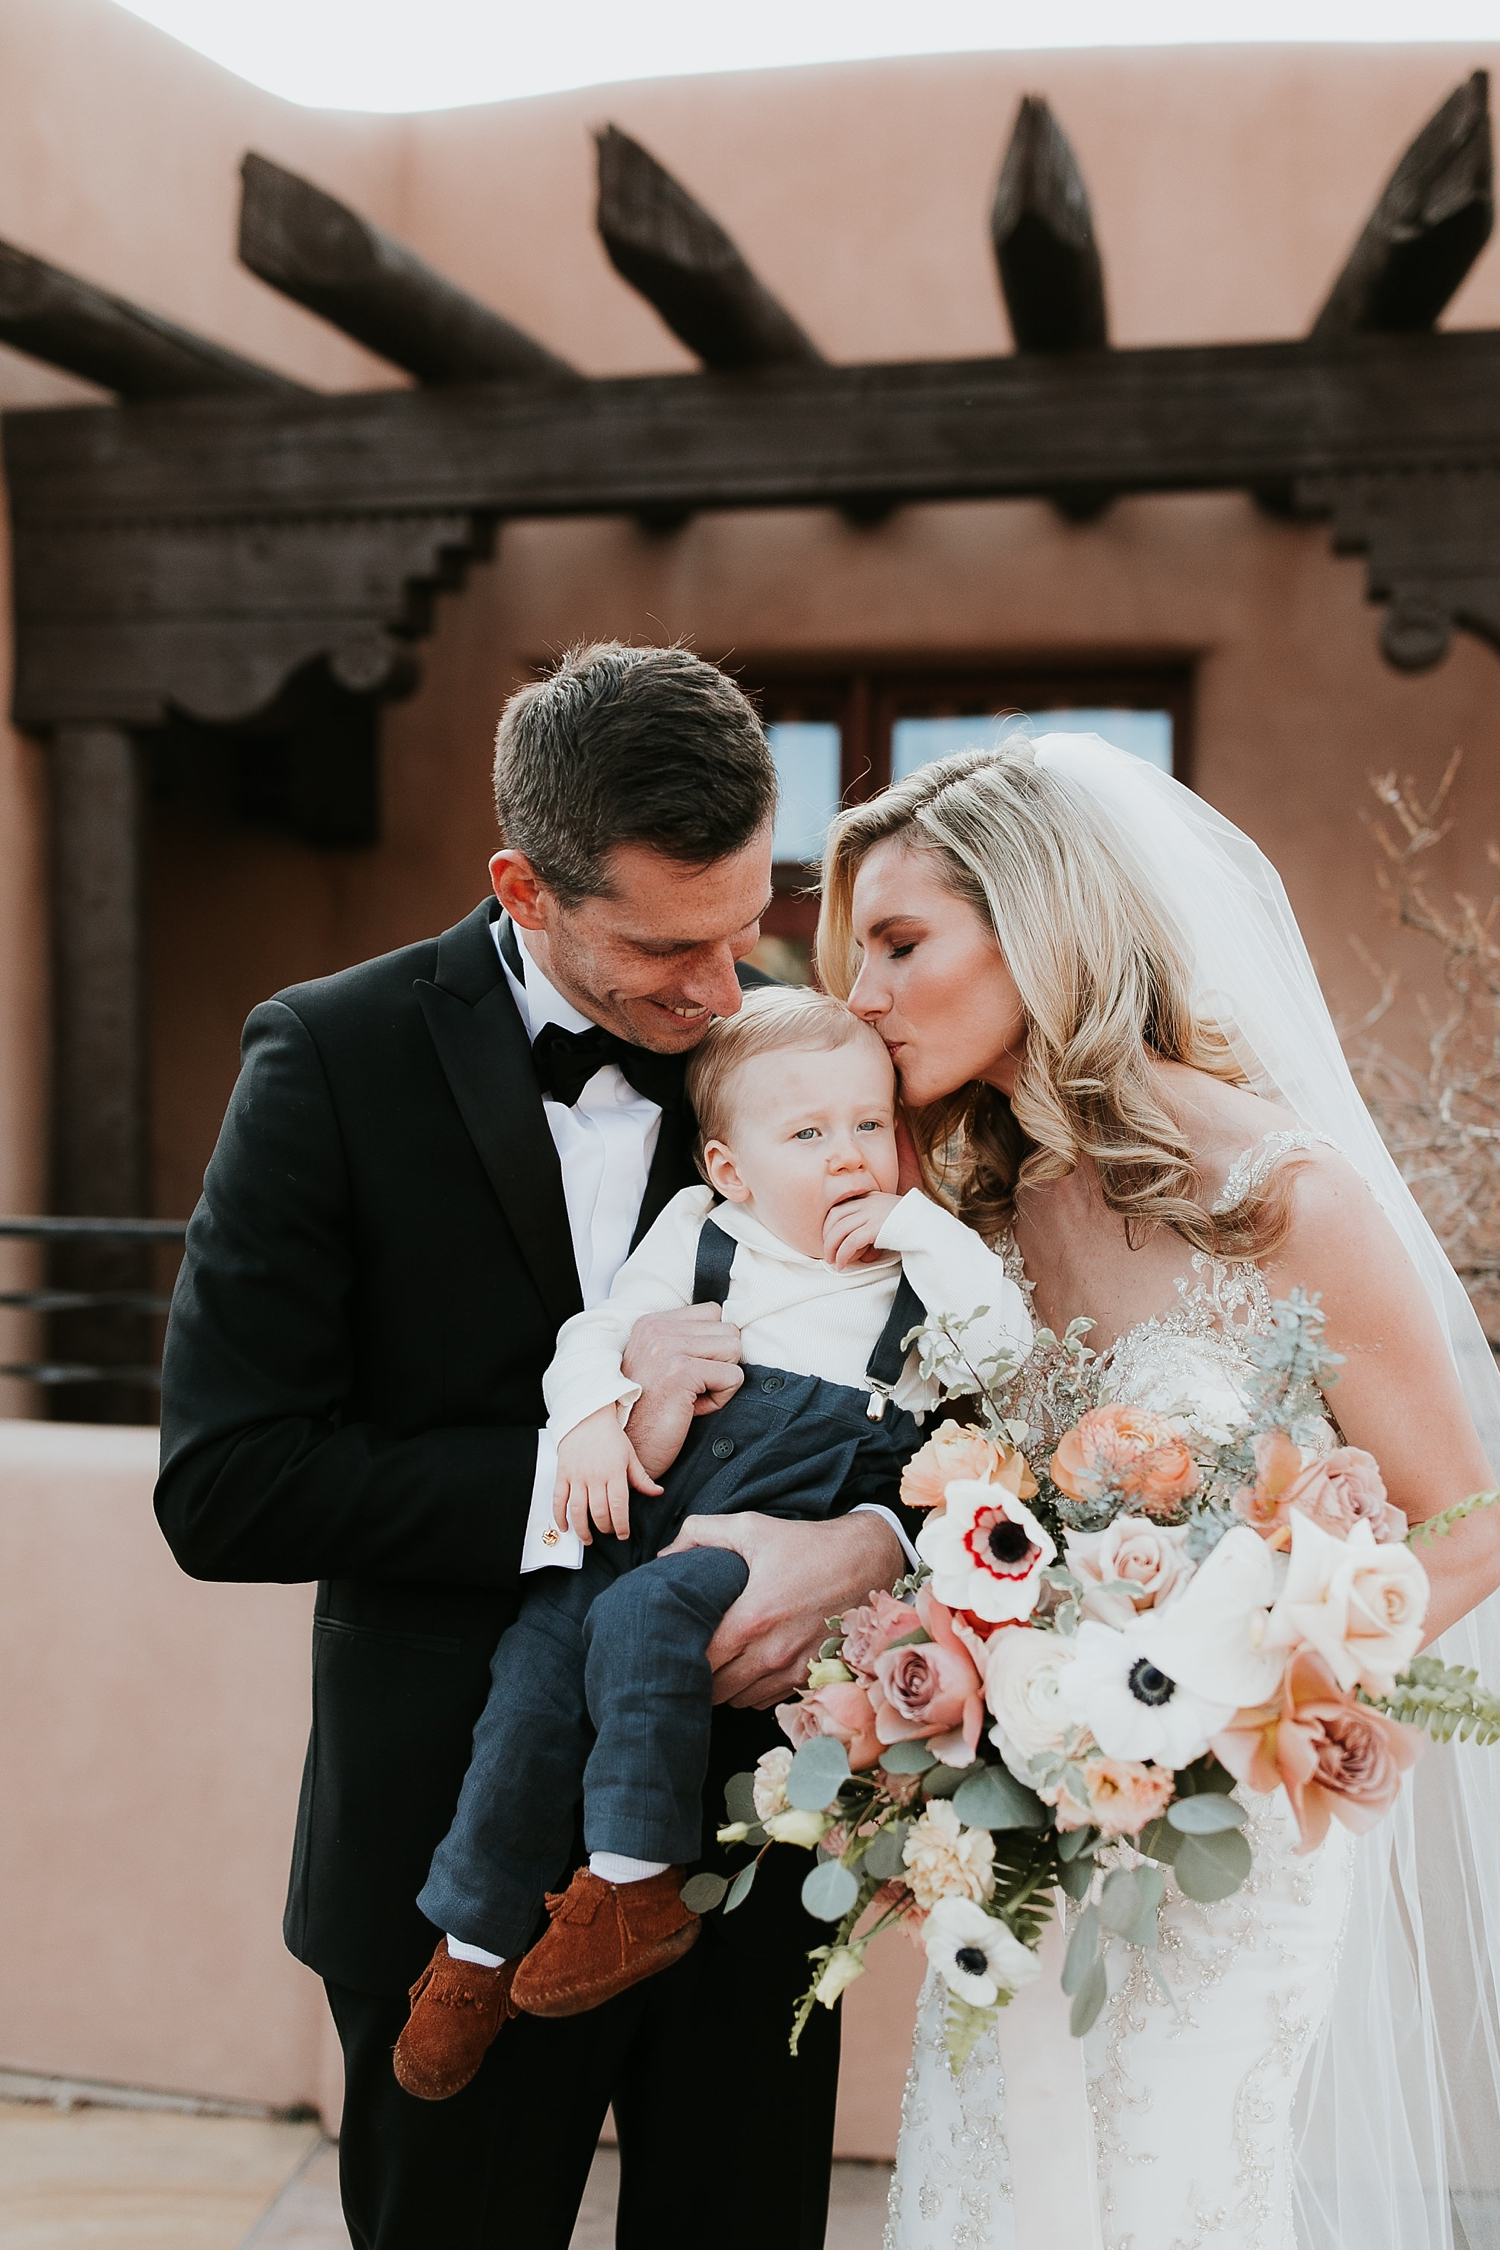 Alicia+lucia+photography+-+albuquerque+wedding+photographer+-+santa+fe+wedding+photography+-+new+mexico+wedding+photographer+-+la+fonda+wedding+-+la+fonda+winter+wedding_0052.jpg